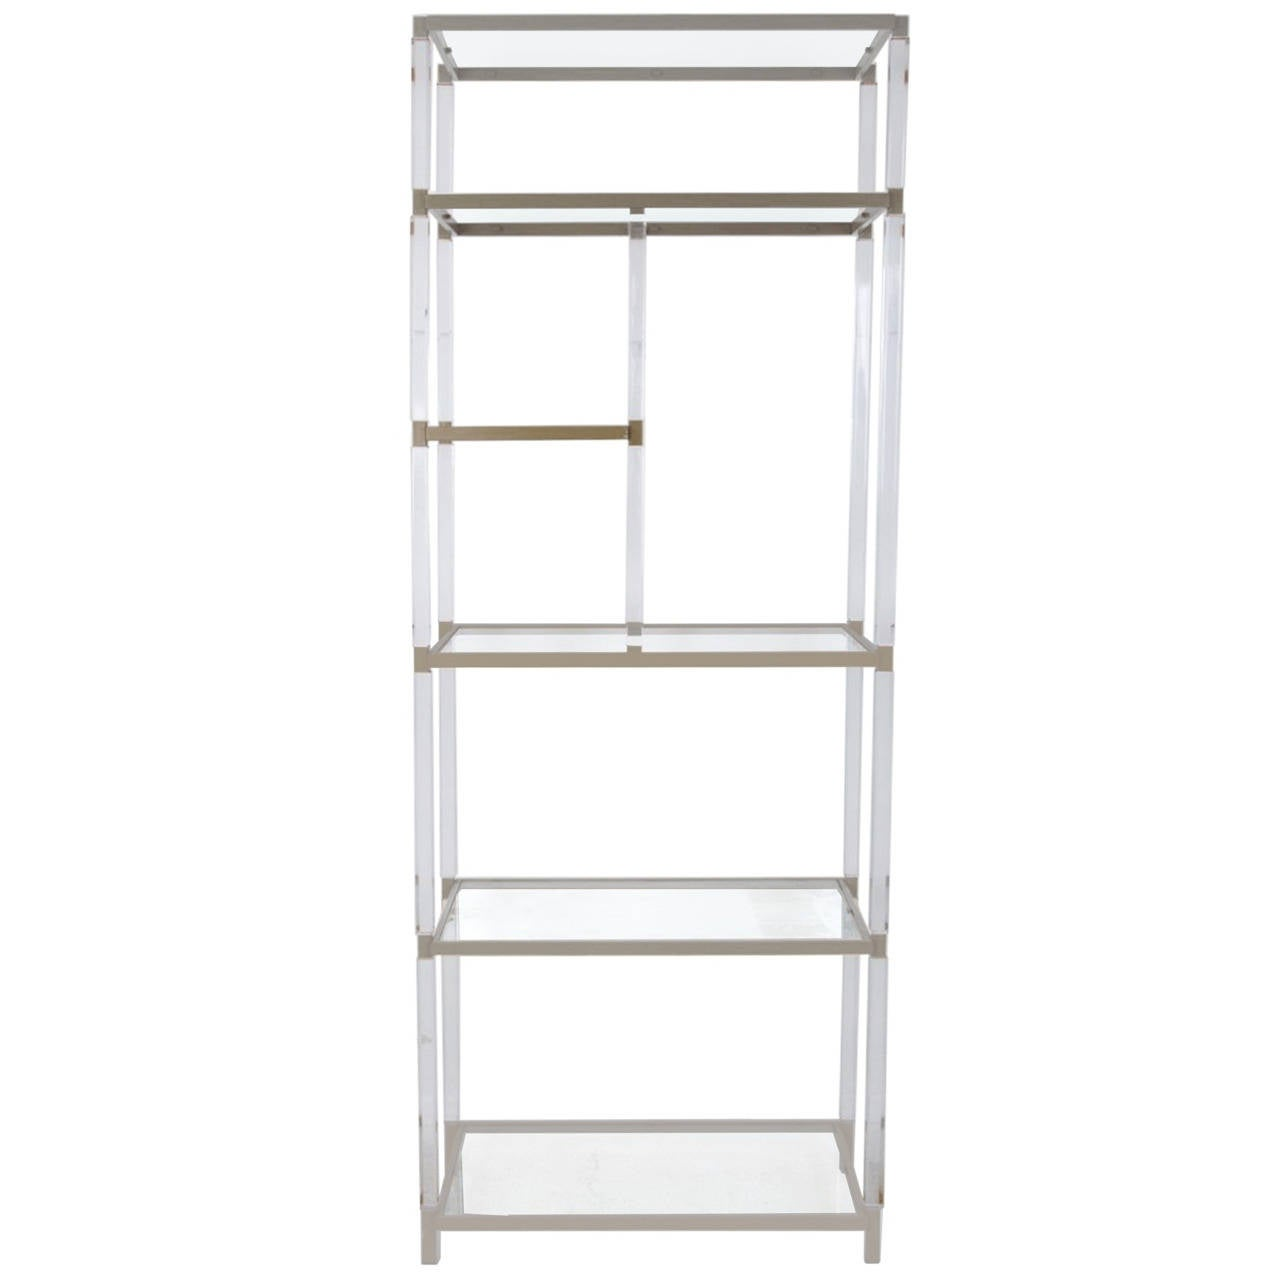 Lucite and Nickel Etagere by Charles Hollis Jones from the Metric Collection